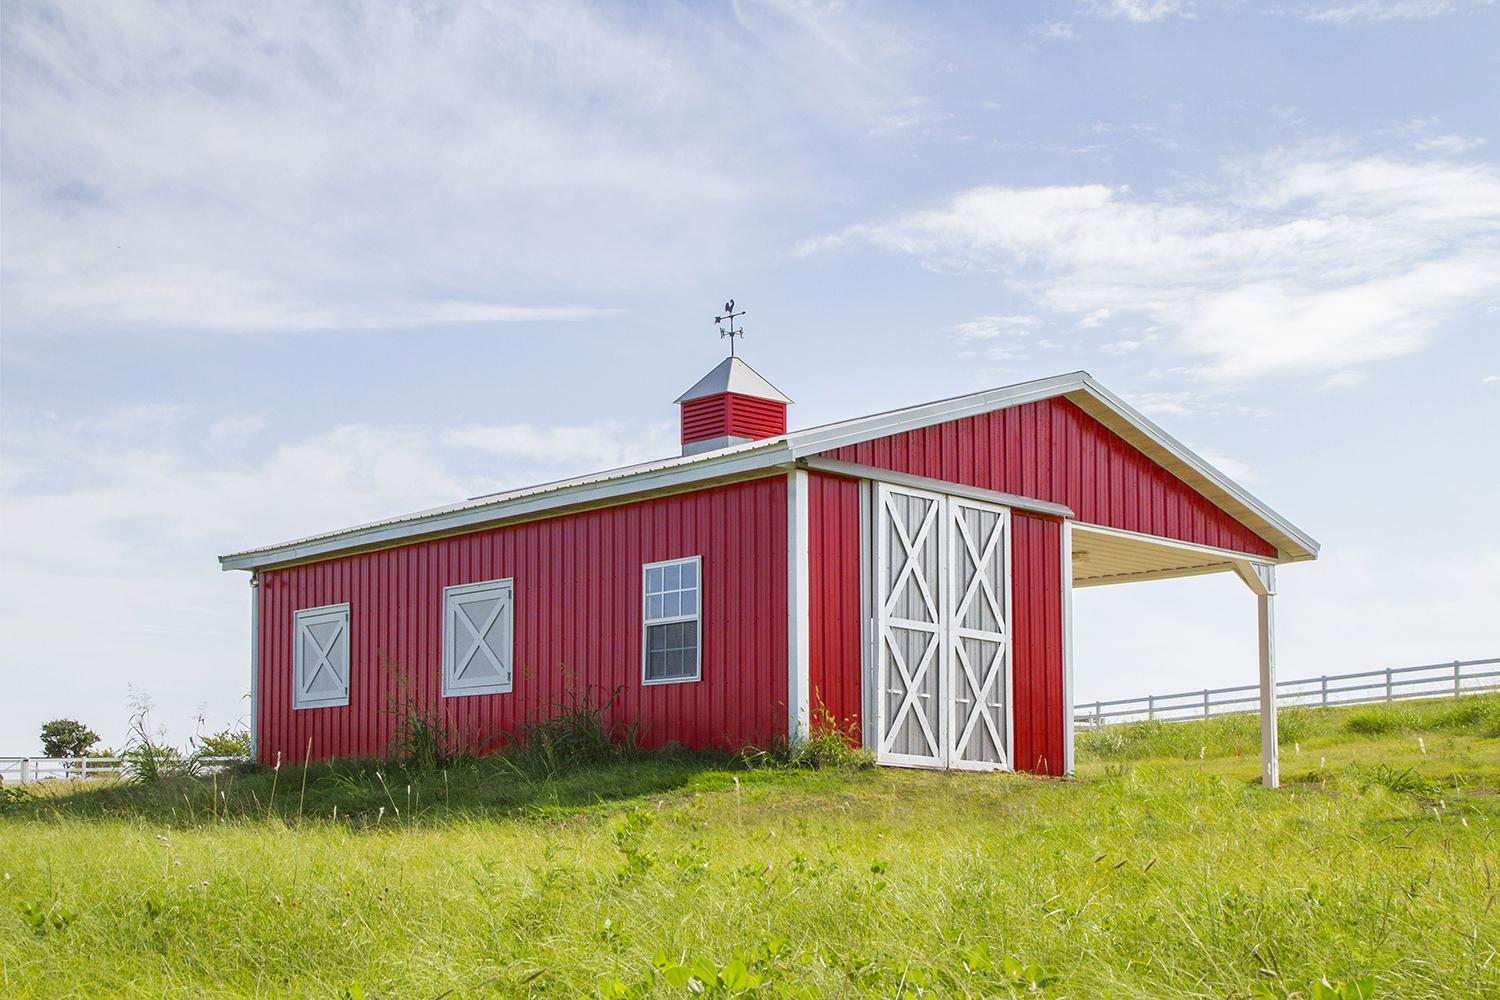 The FarmHouse Fresh Ranch is located on a sweeping hilltop in McKinney, Texas. (Pictured: The barn).